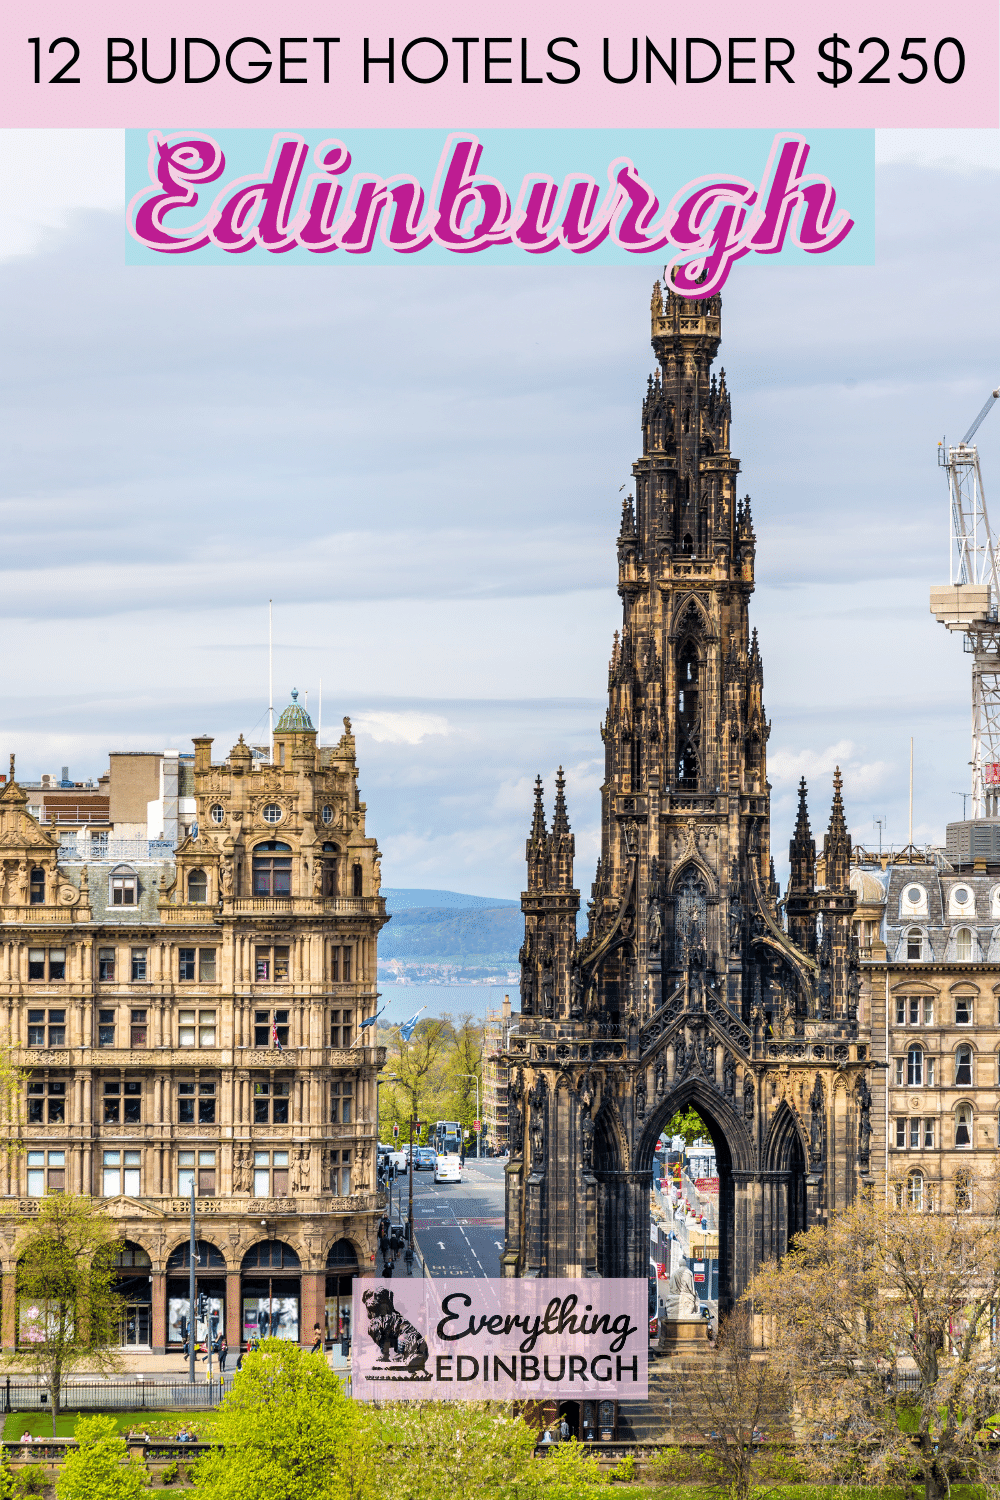 Looking for budget hotels in Edinburgh? This guide details central hotels close to attractions that are affordable and offer a good night's sleep! Click to find out the top cheap hotels in Edinburgh.